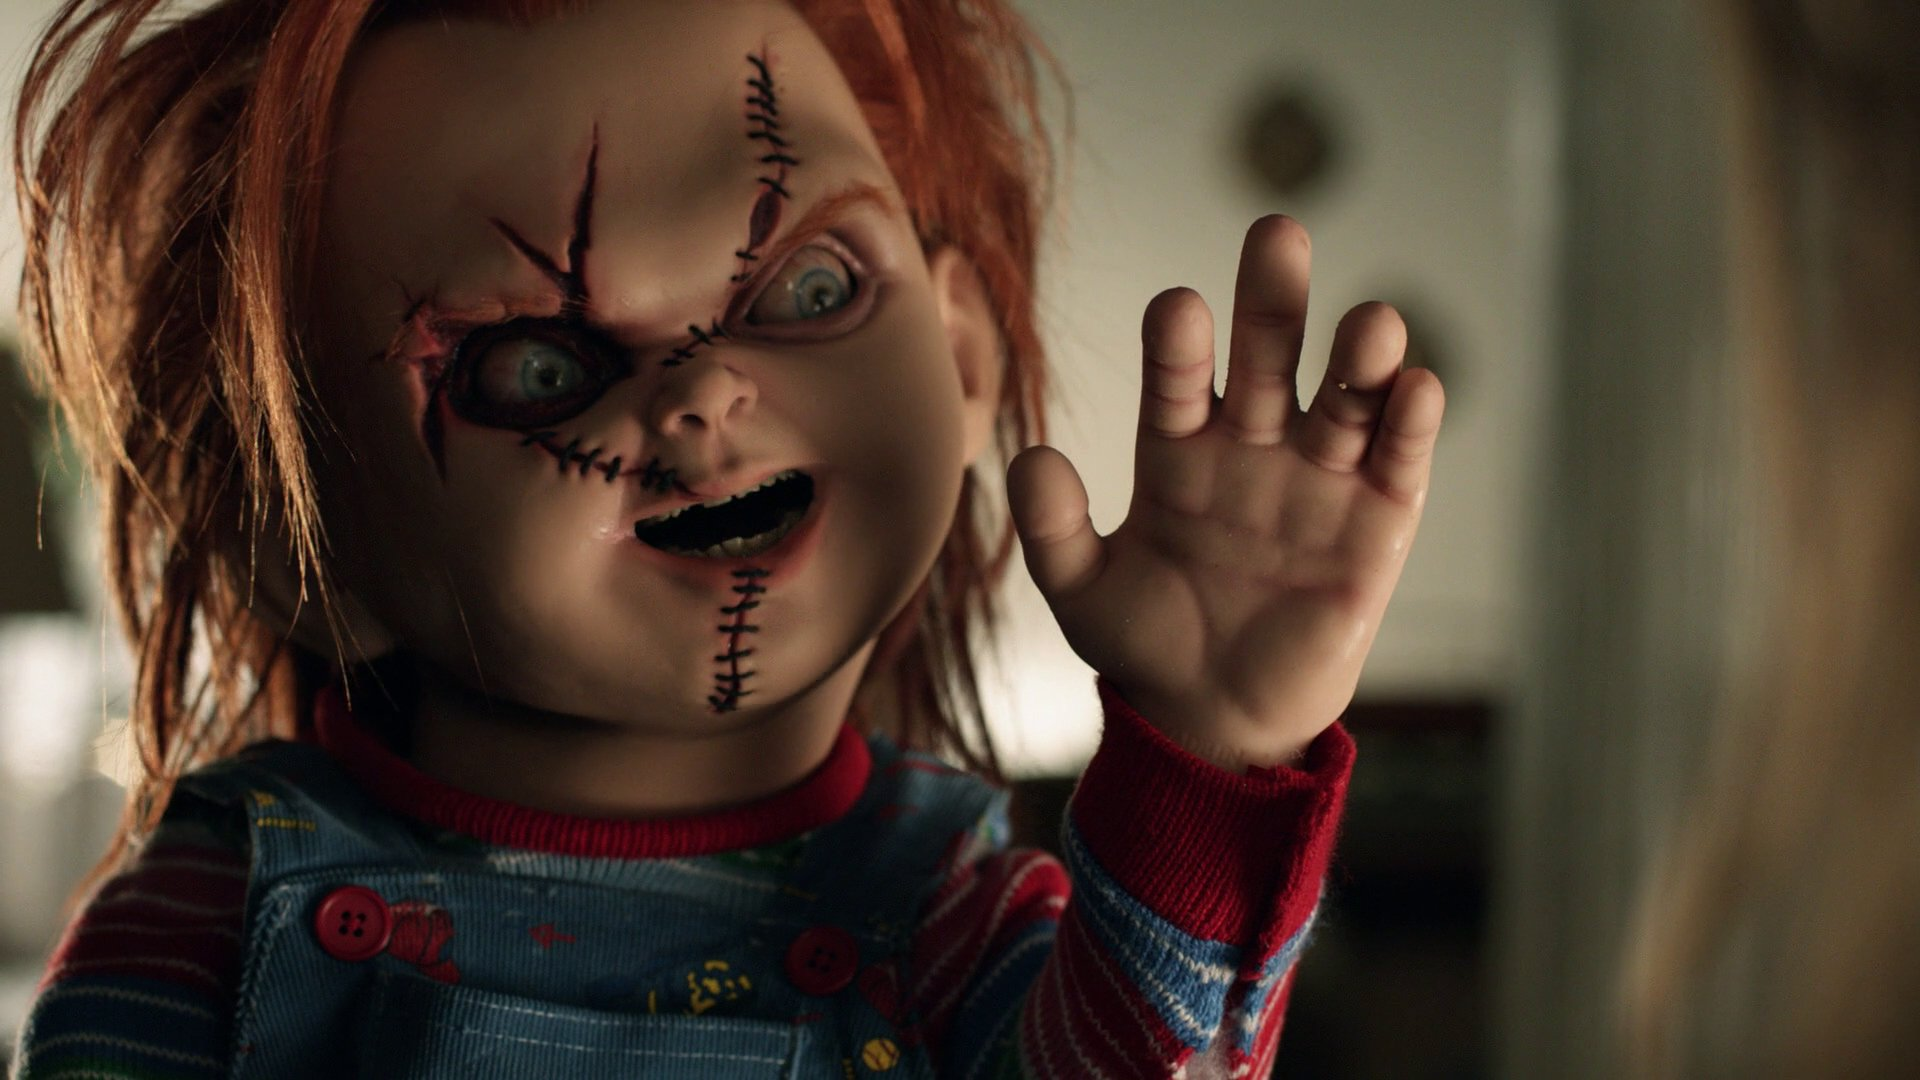 Chucky TV Series in Development at Syfy With Original 'Child's Play' Writer